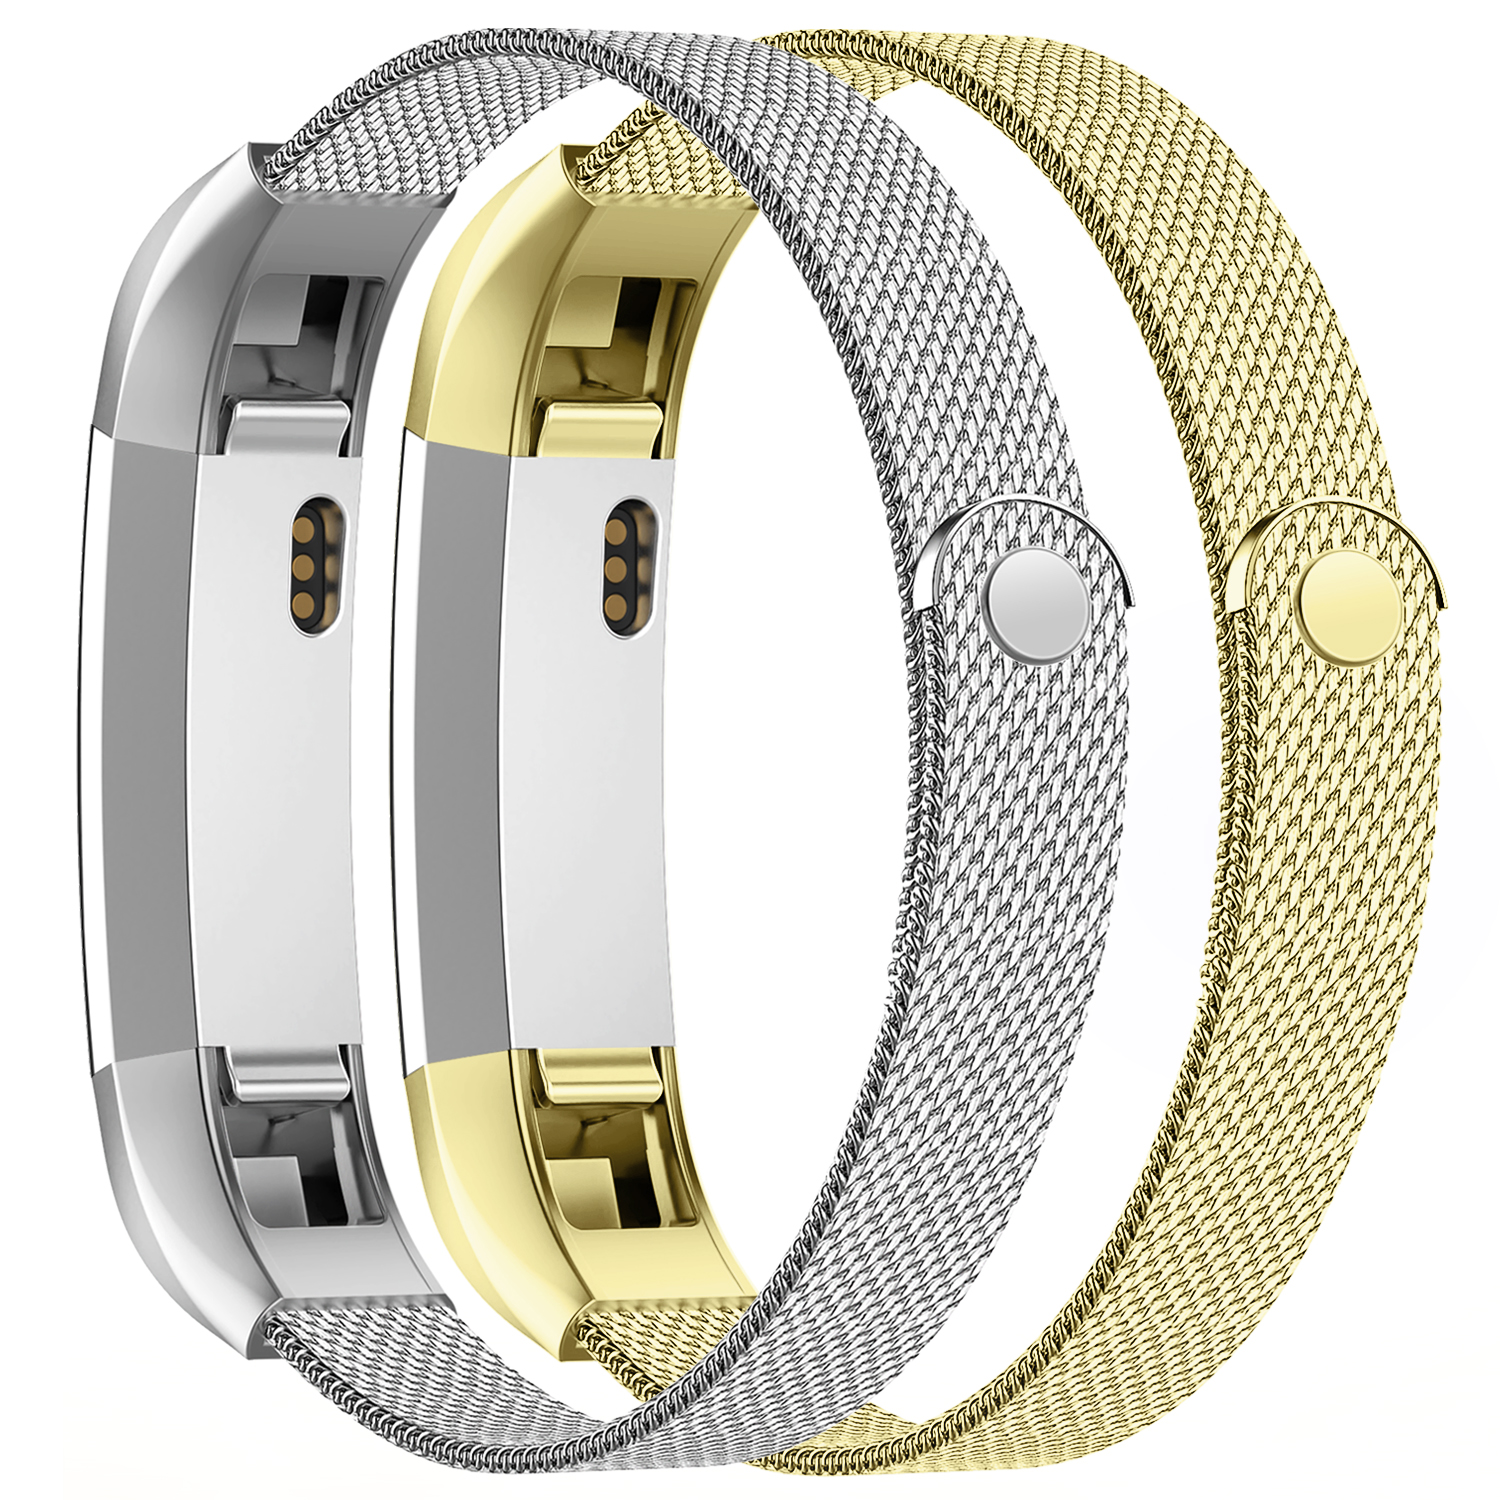 iGK Replacement Compatible for Fitbit Alta Band and Fitbit Alta HR Bands, Stainless Steel Metal Bracelet Strap with Unique Magnet Clasp for Women Men Gold+Sliver 2Pack Large